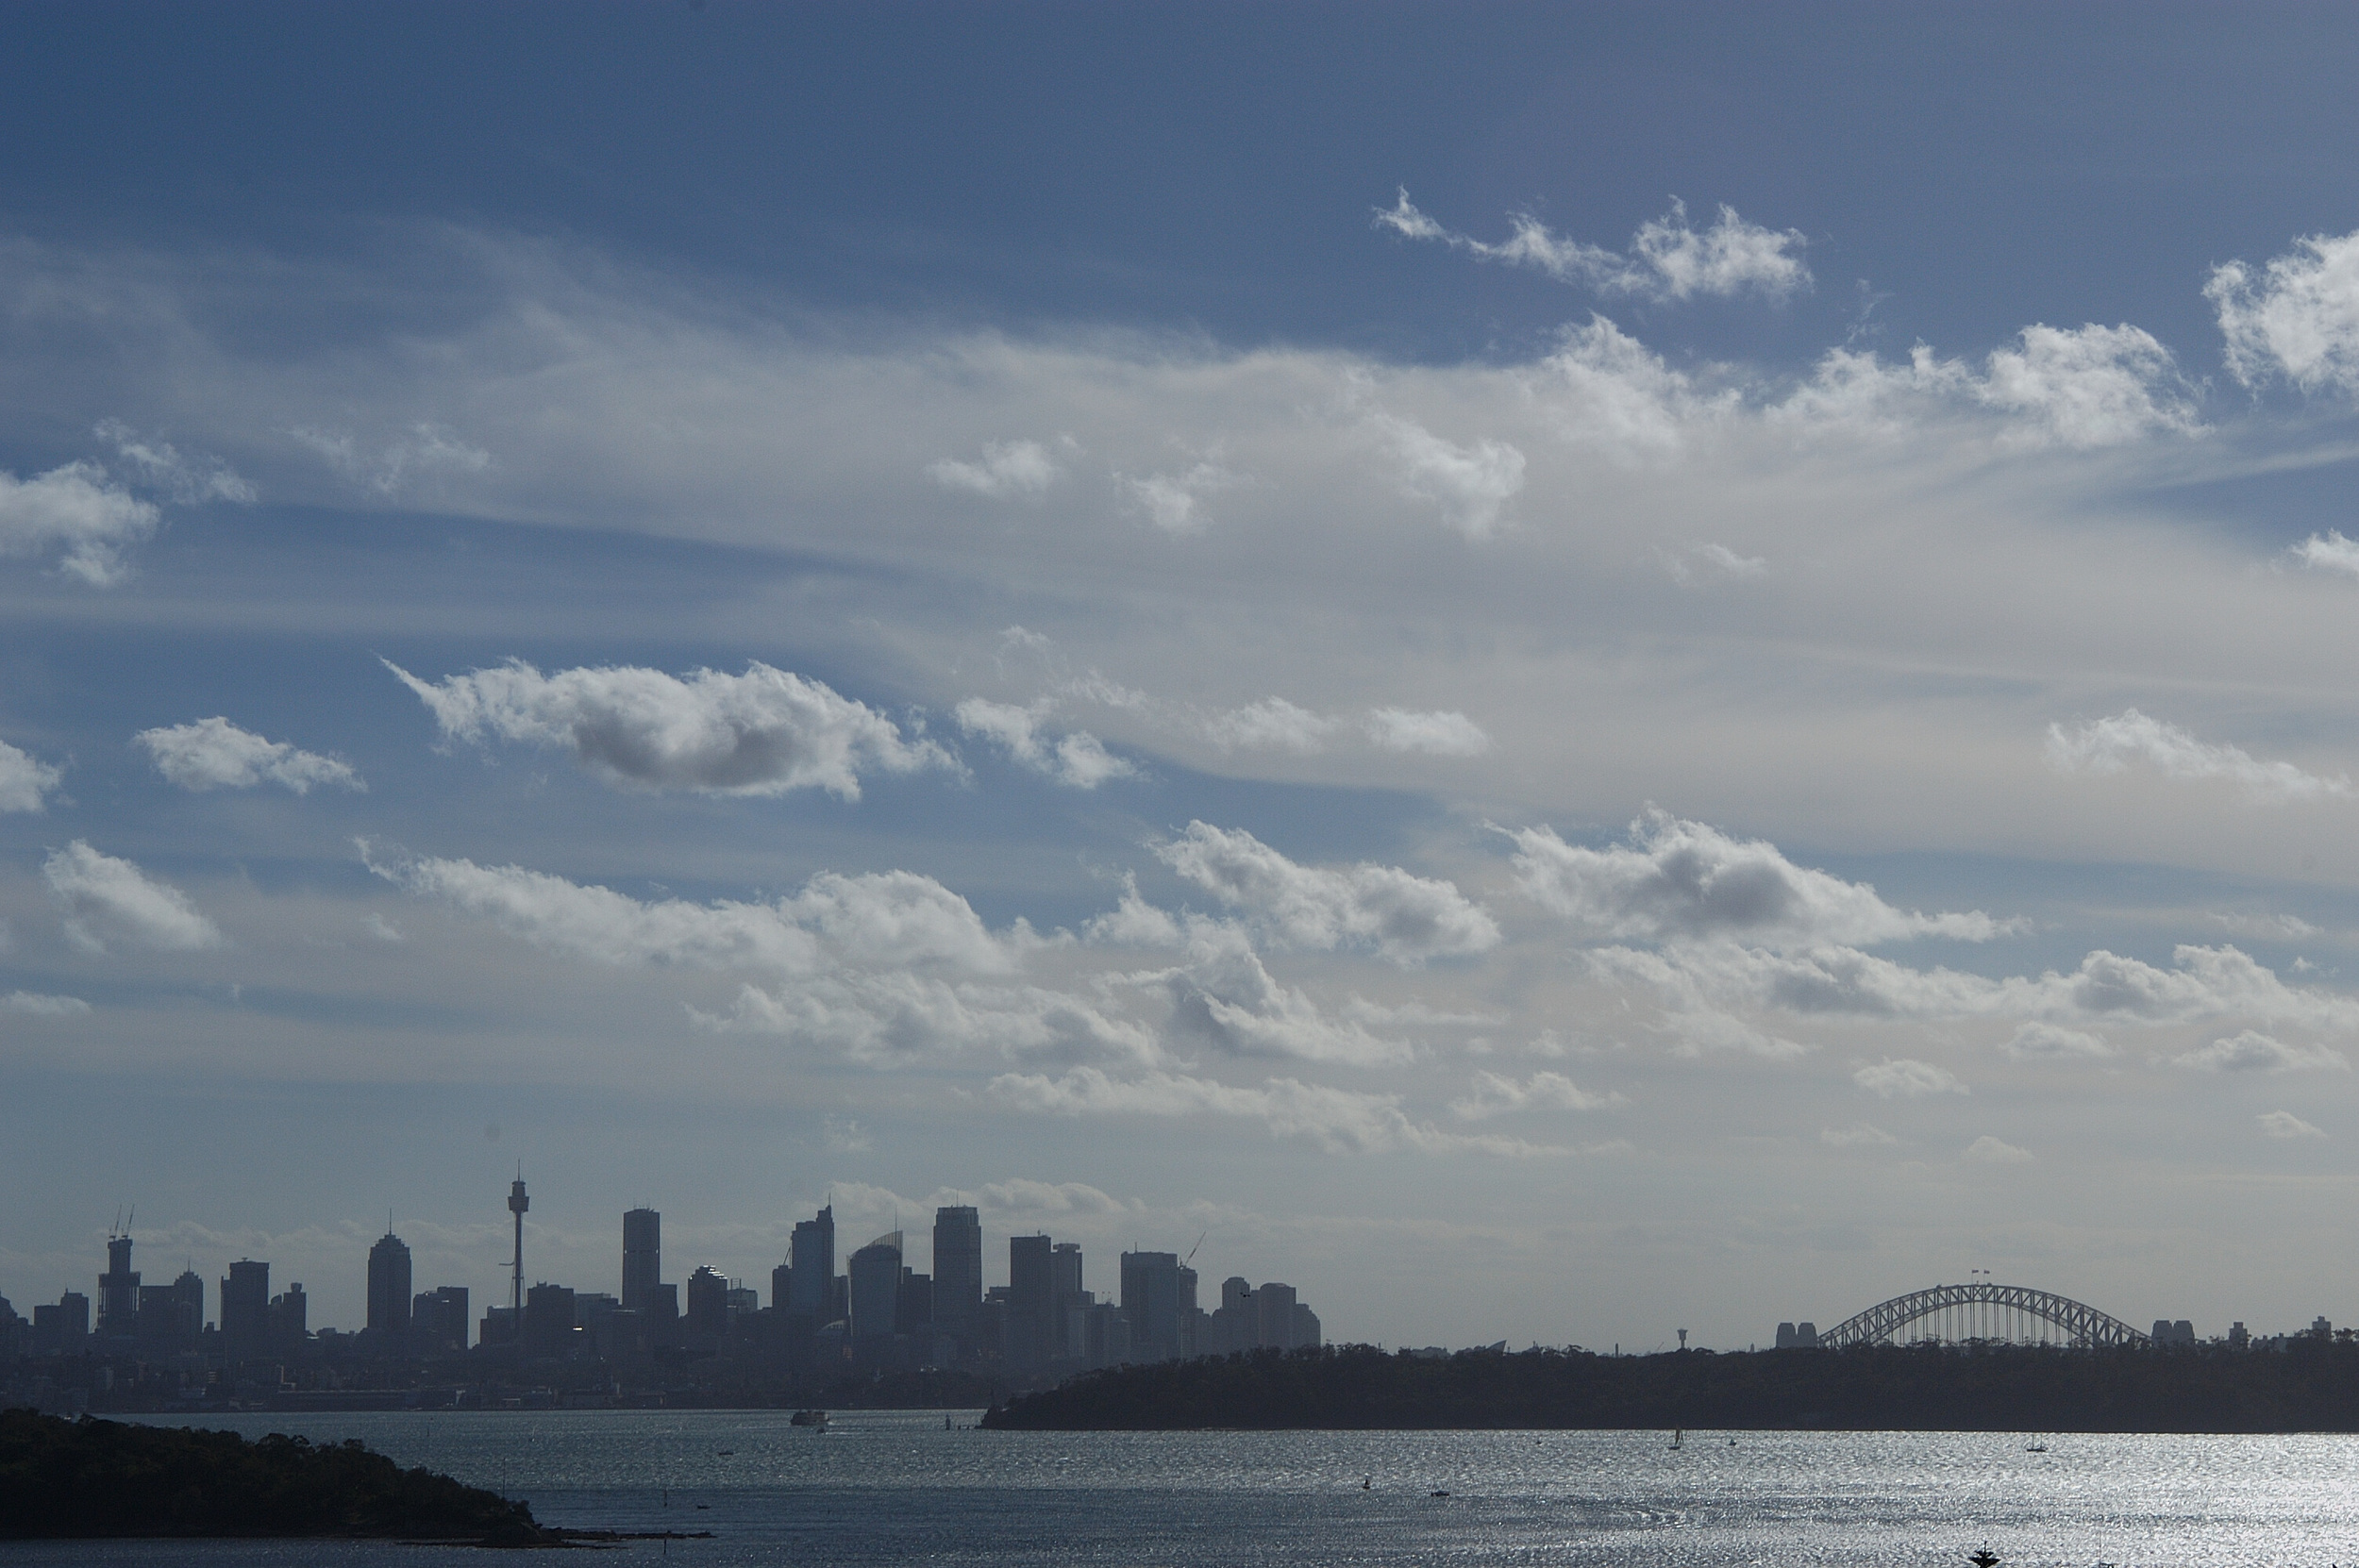 A beautiful view of the city from the ferries.